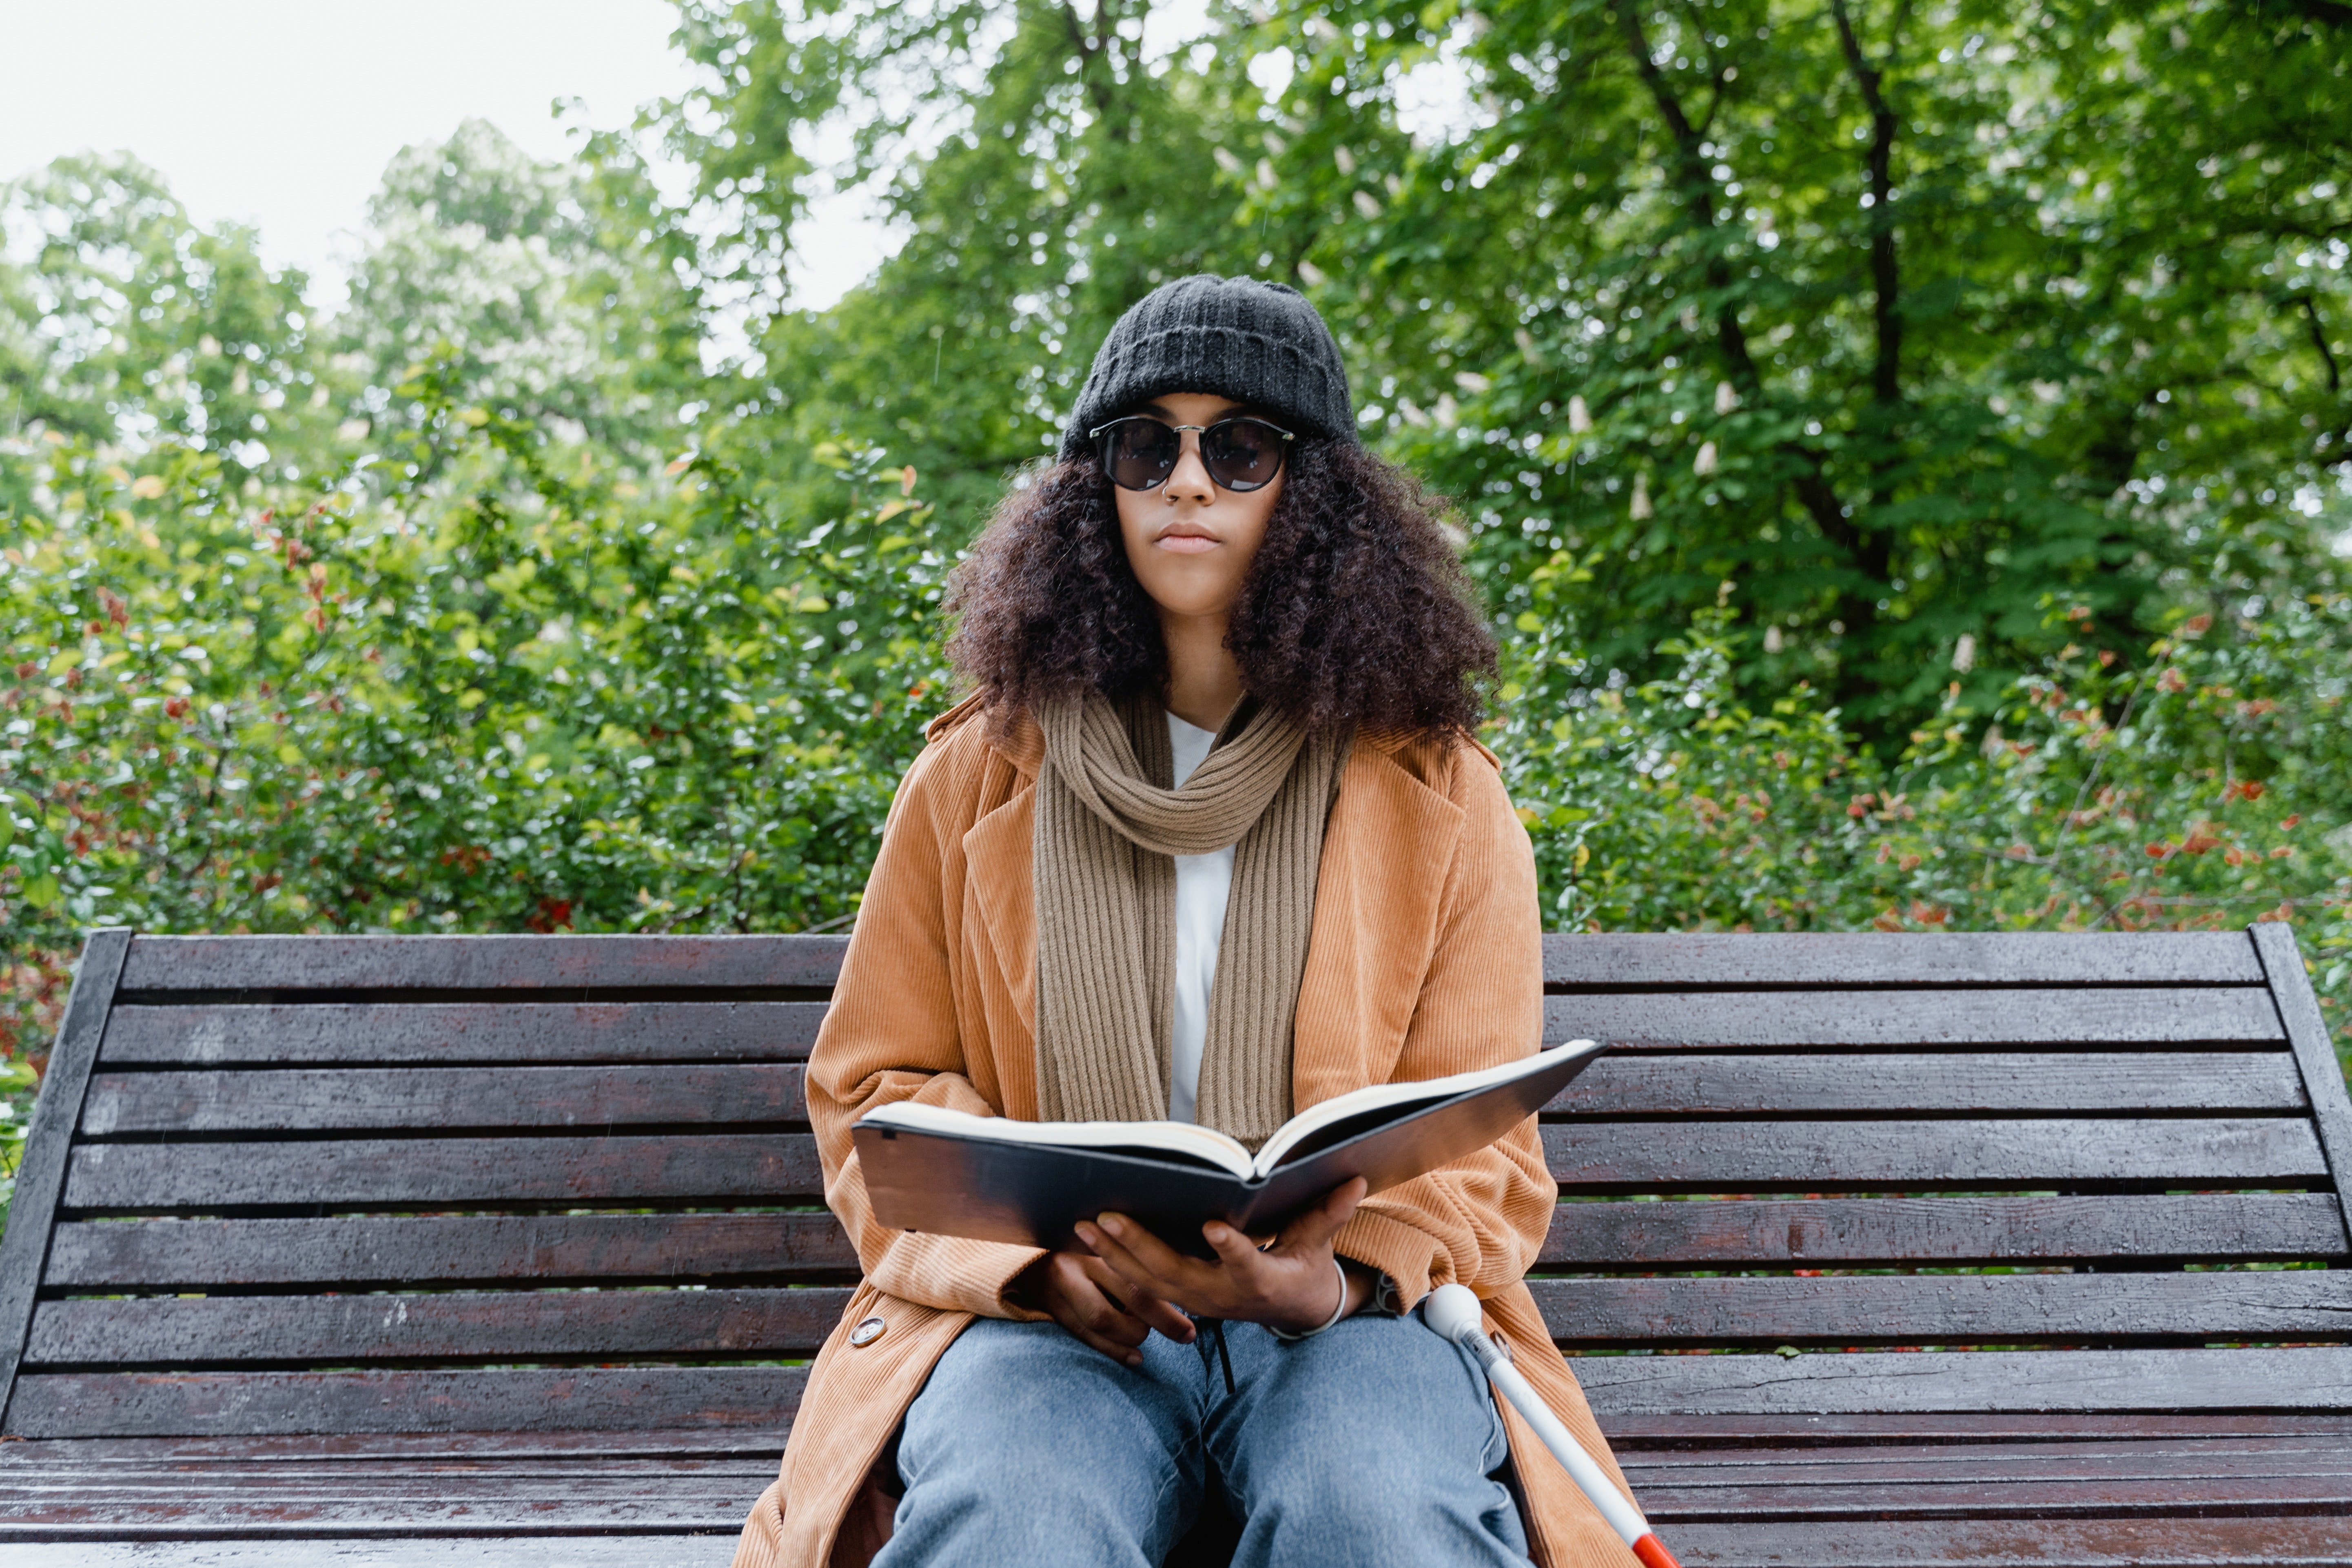 Pictured - A young woman sitting on a bench holding a book wearing sunglasses | Source: Pexels